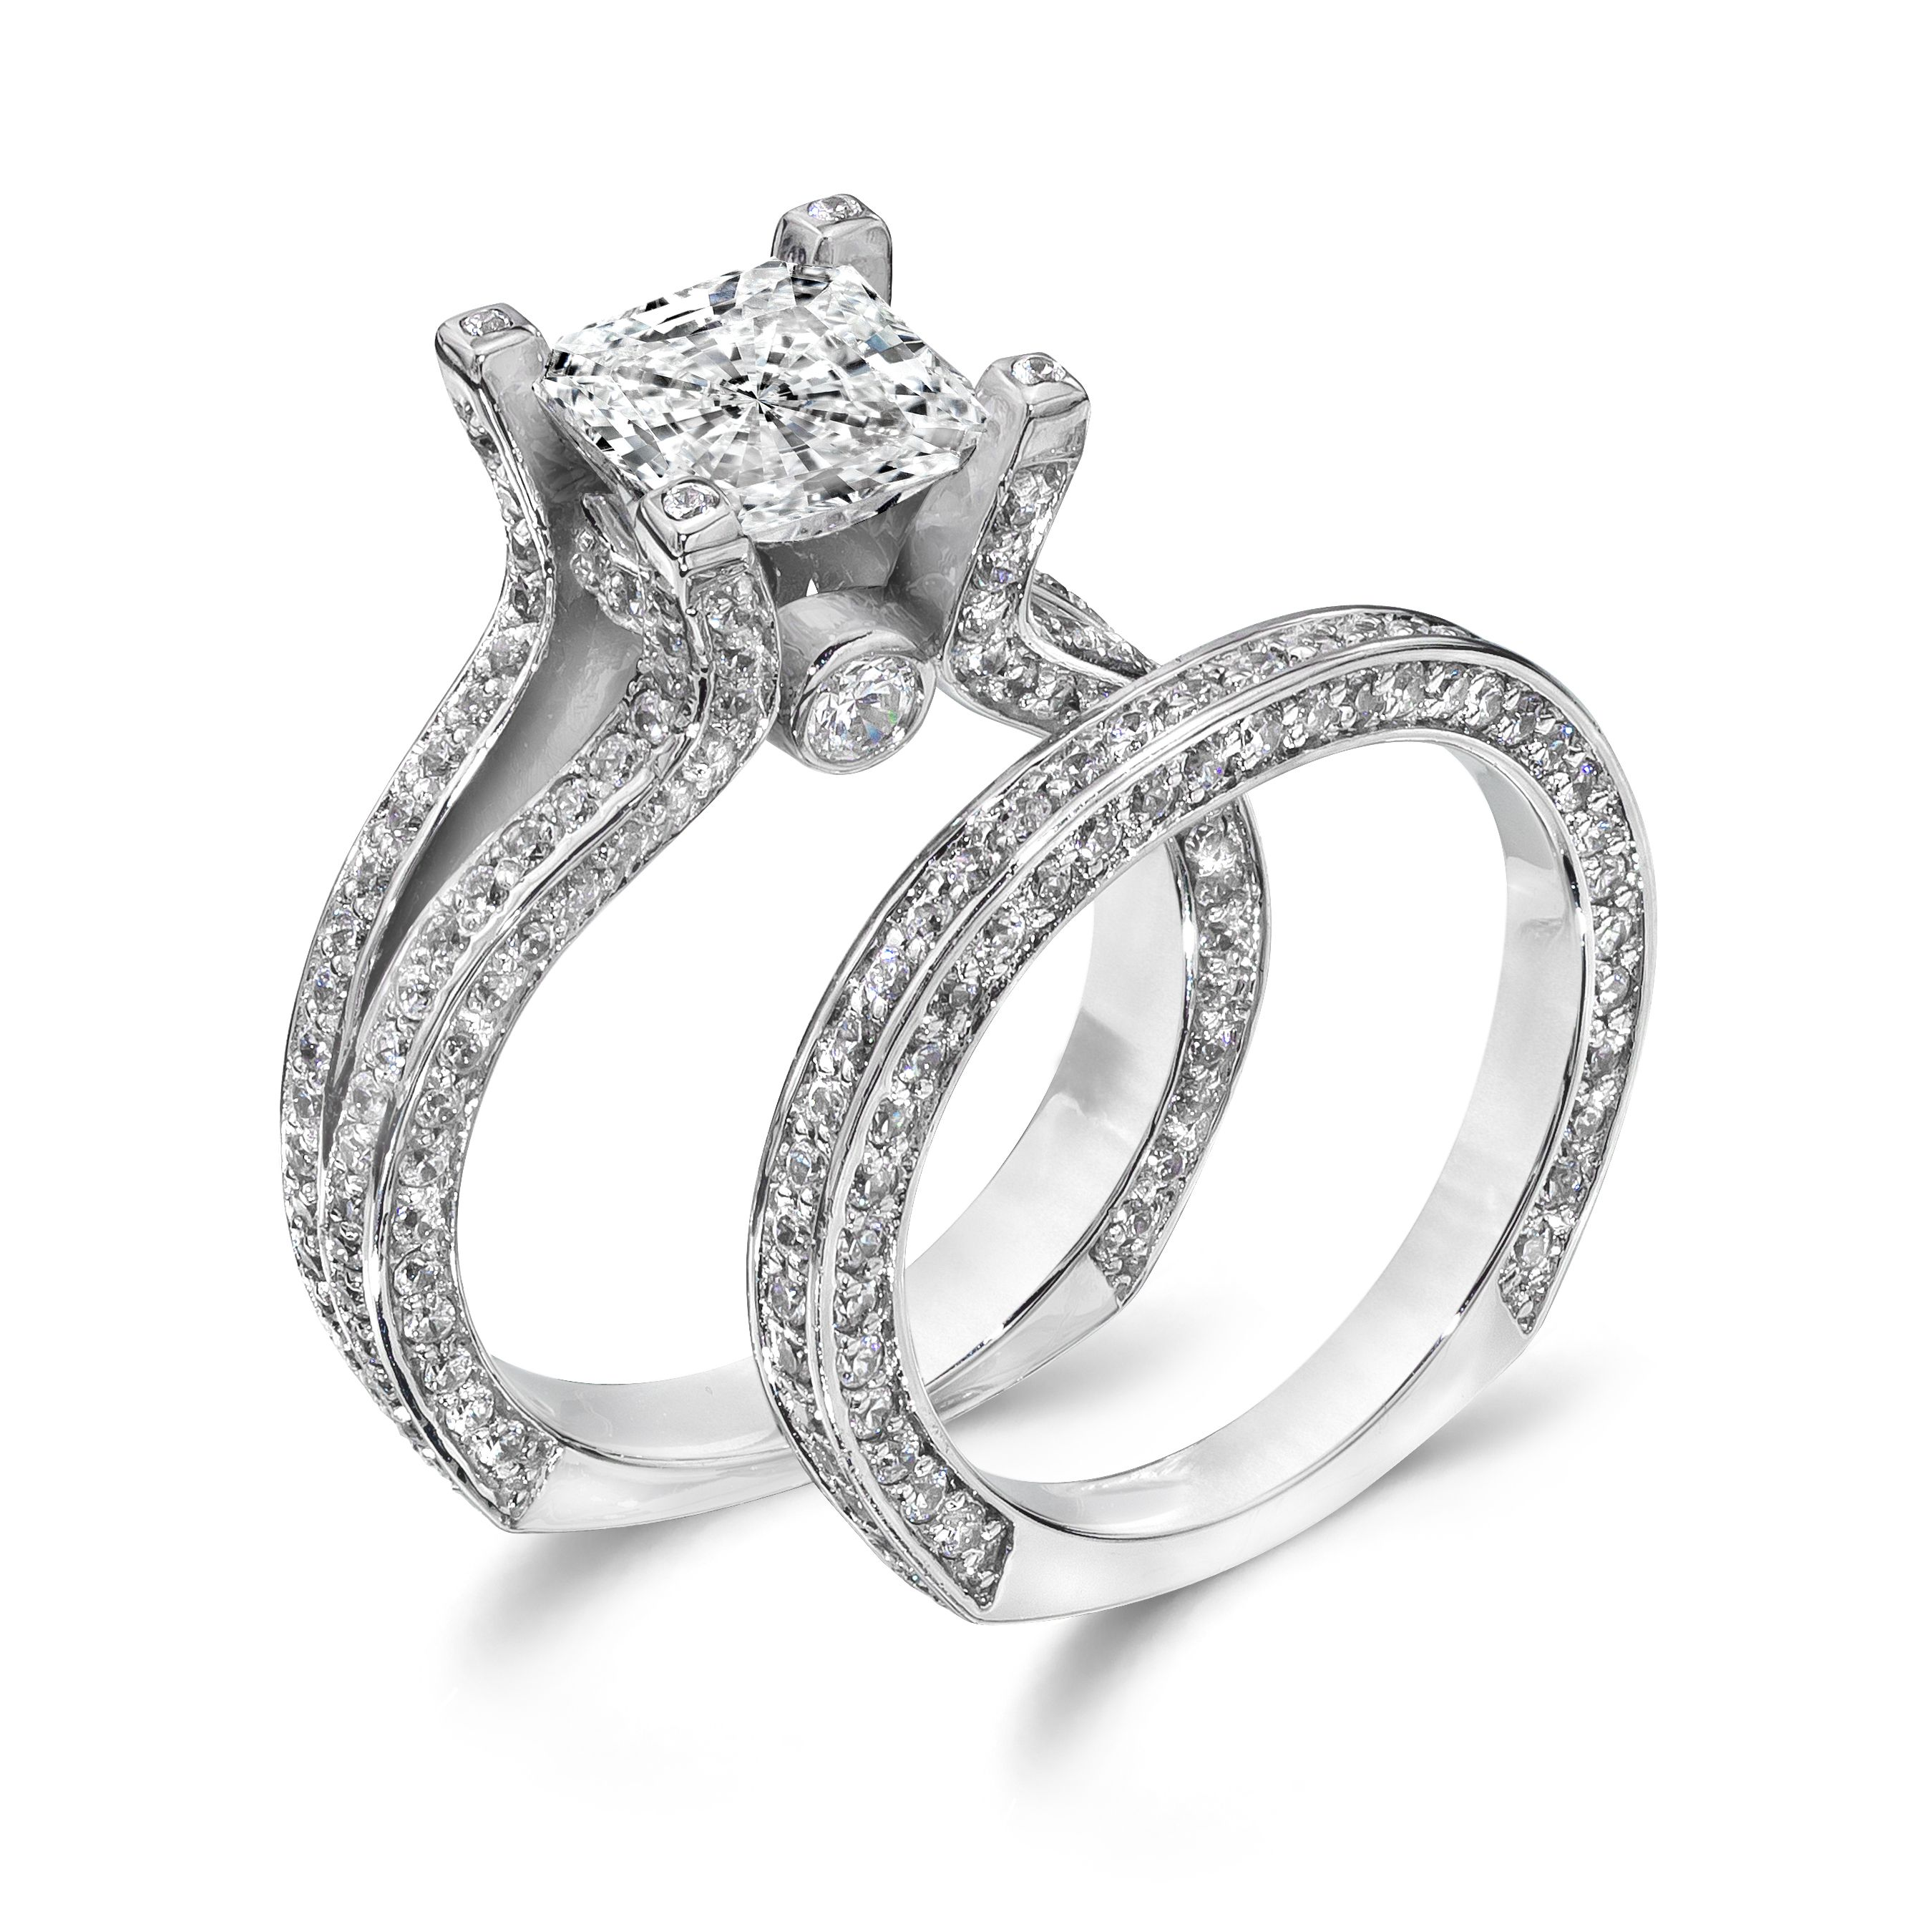 A Closer Look at Our Princess Cut 20 Carat CZ Wedding Ring Set